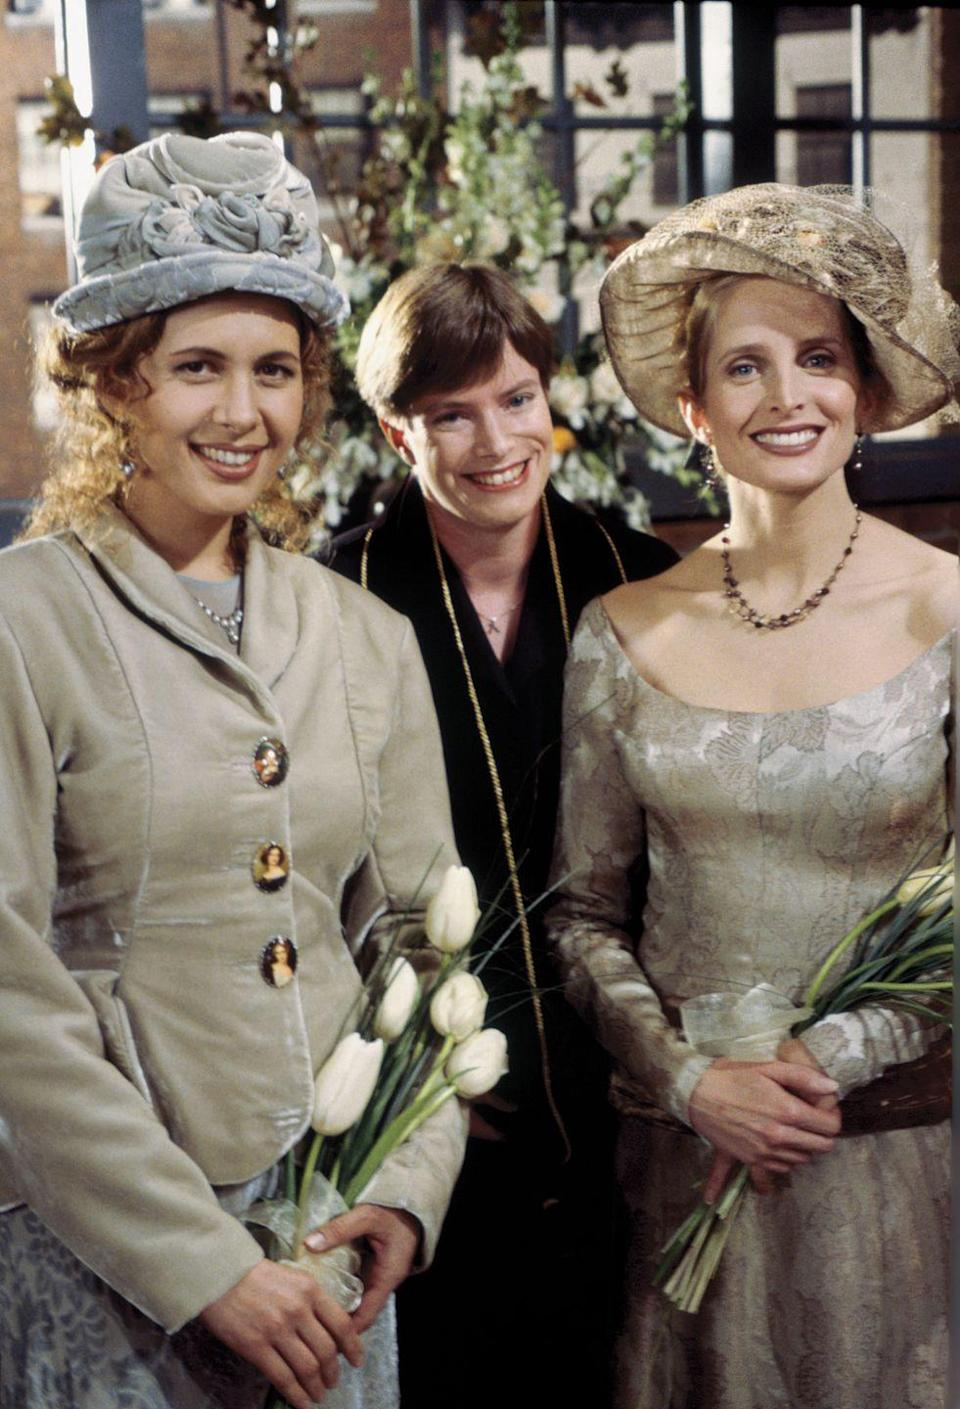 <p>Jessica (left) played the role of Carol's partner, Susan Bunch, on the show. Before then, Jessica appeared on television shows like <em>Party of Five </em>and <em>Seinfeld. </em></p>